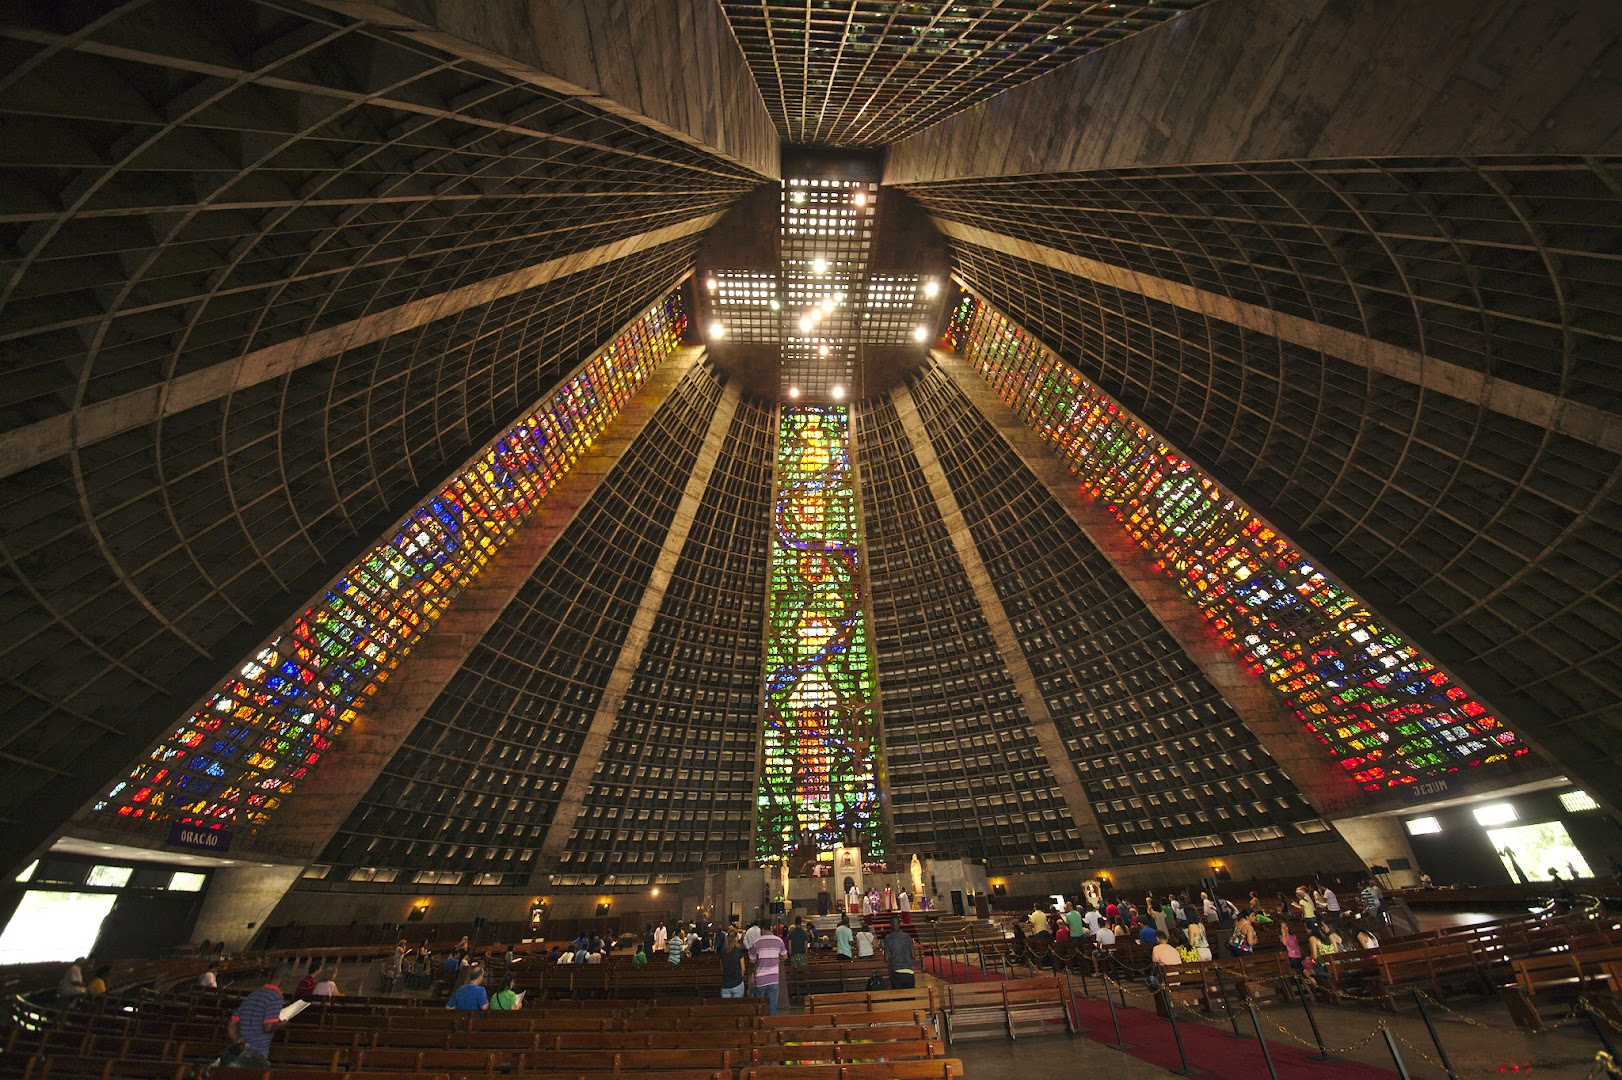 Huge interiors of Rio cathedral